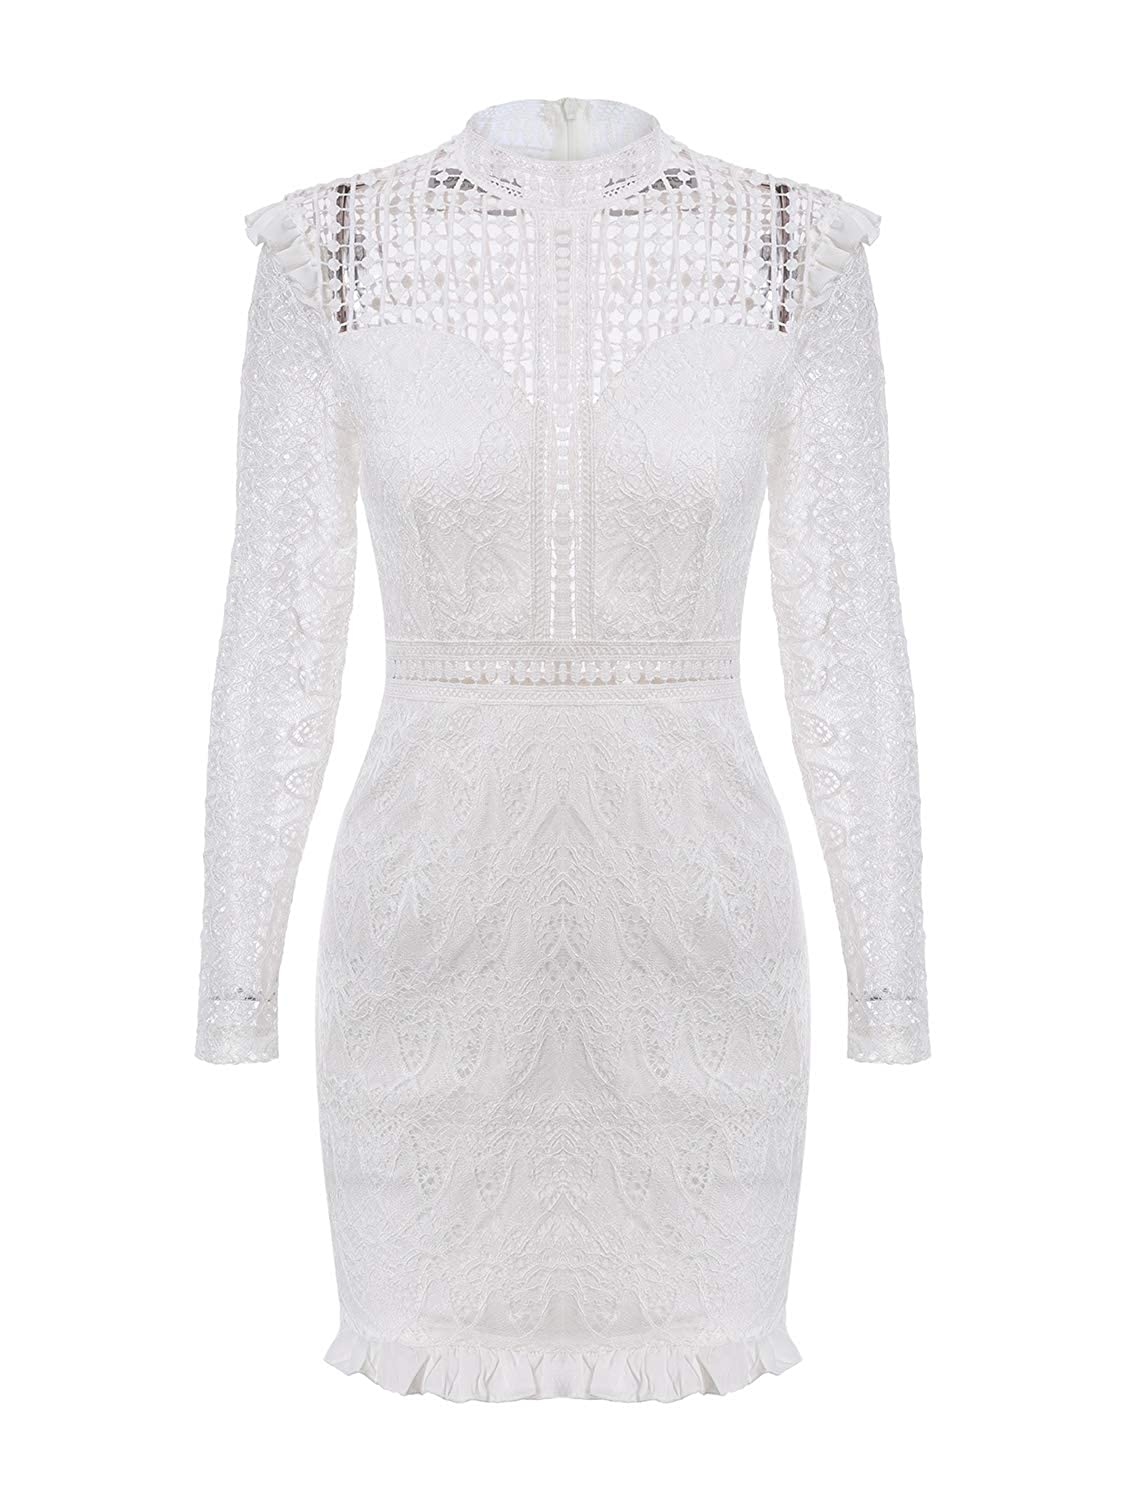 White Glamaker Women's Elegant Hollow Out Lace Dress Long Sleeve Bodycon Mini Ruffle Dress